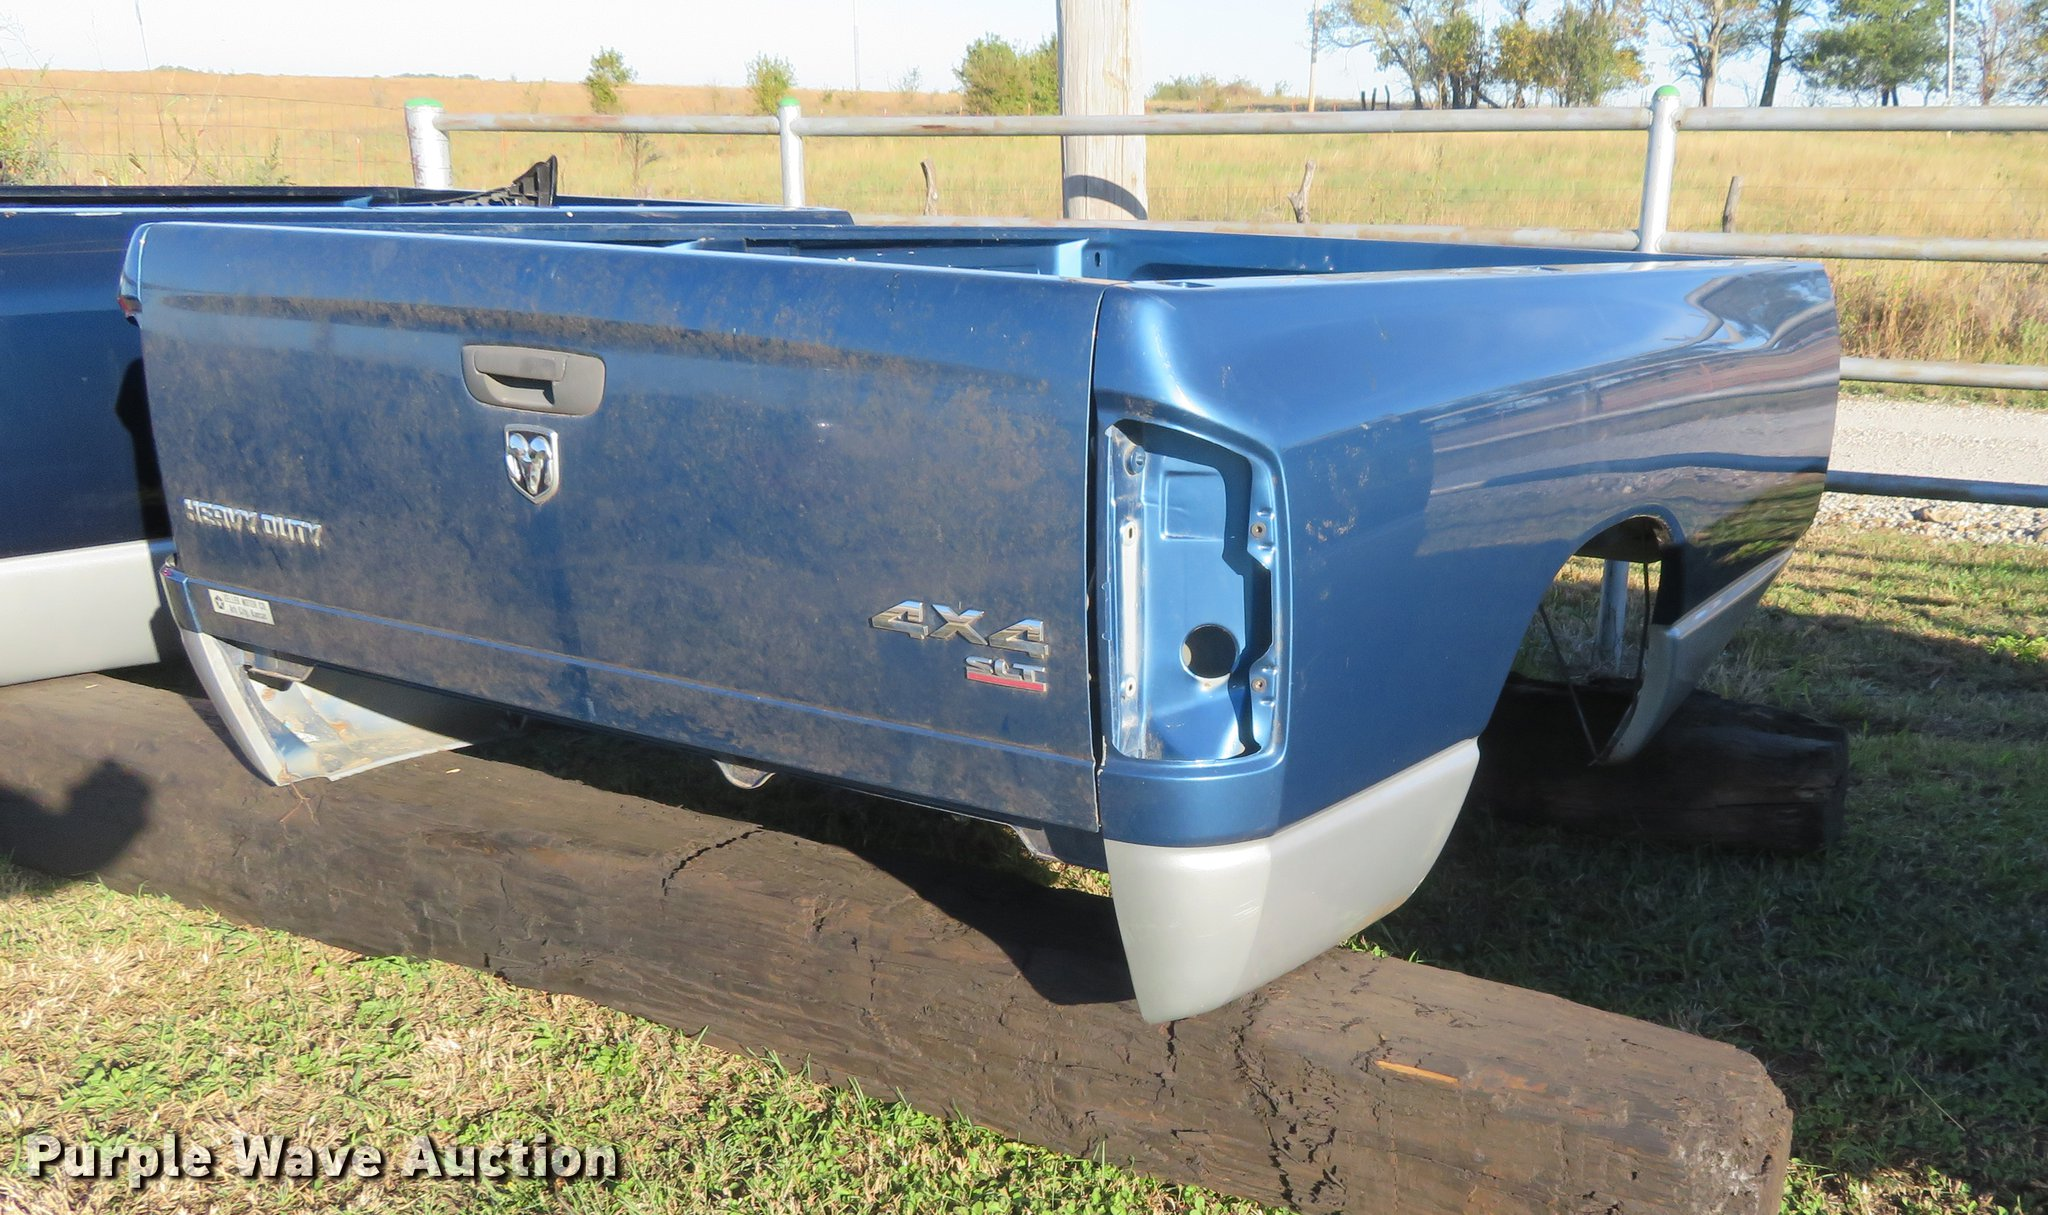 Dodge Ram Truck Bed For Sale >> 2006 Dodge Ram Pickup Truck Bed Item Df9797 11 30 2017